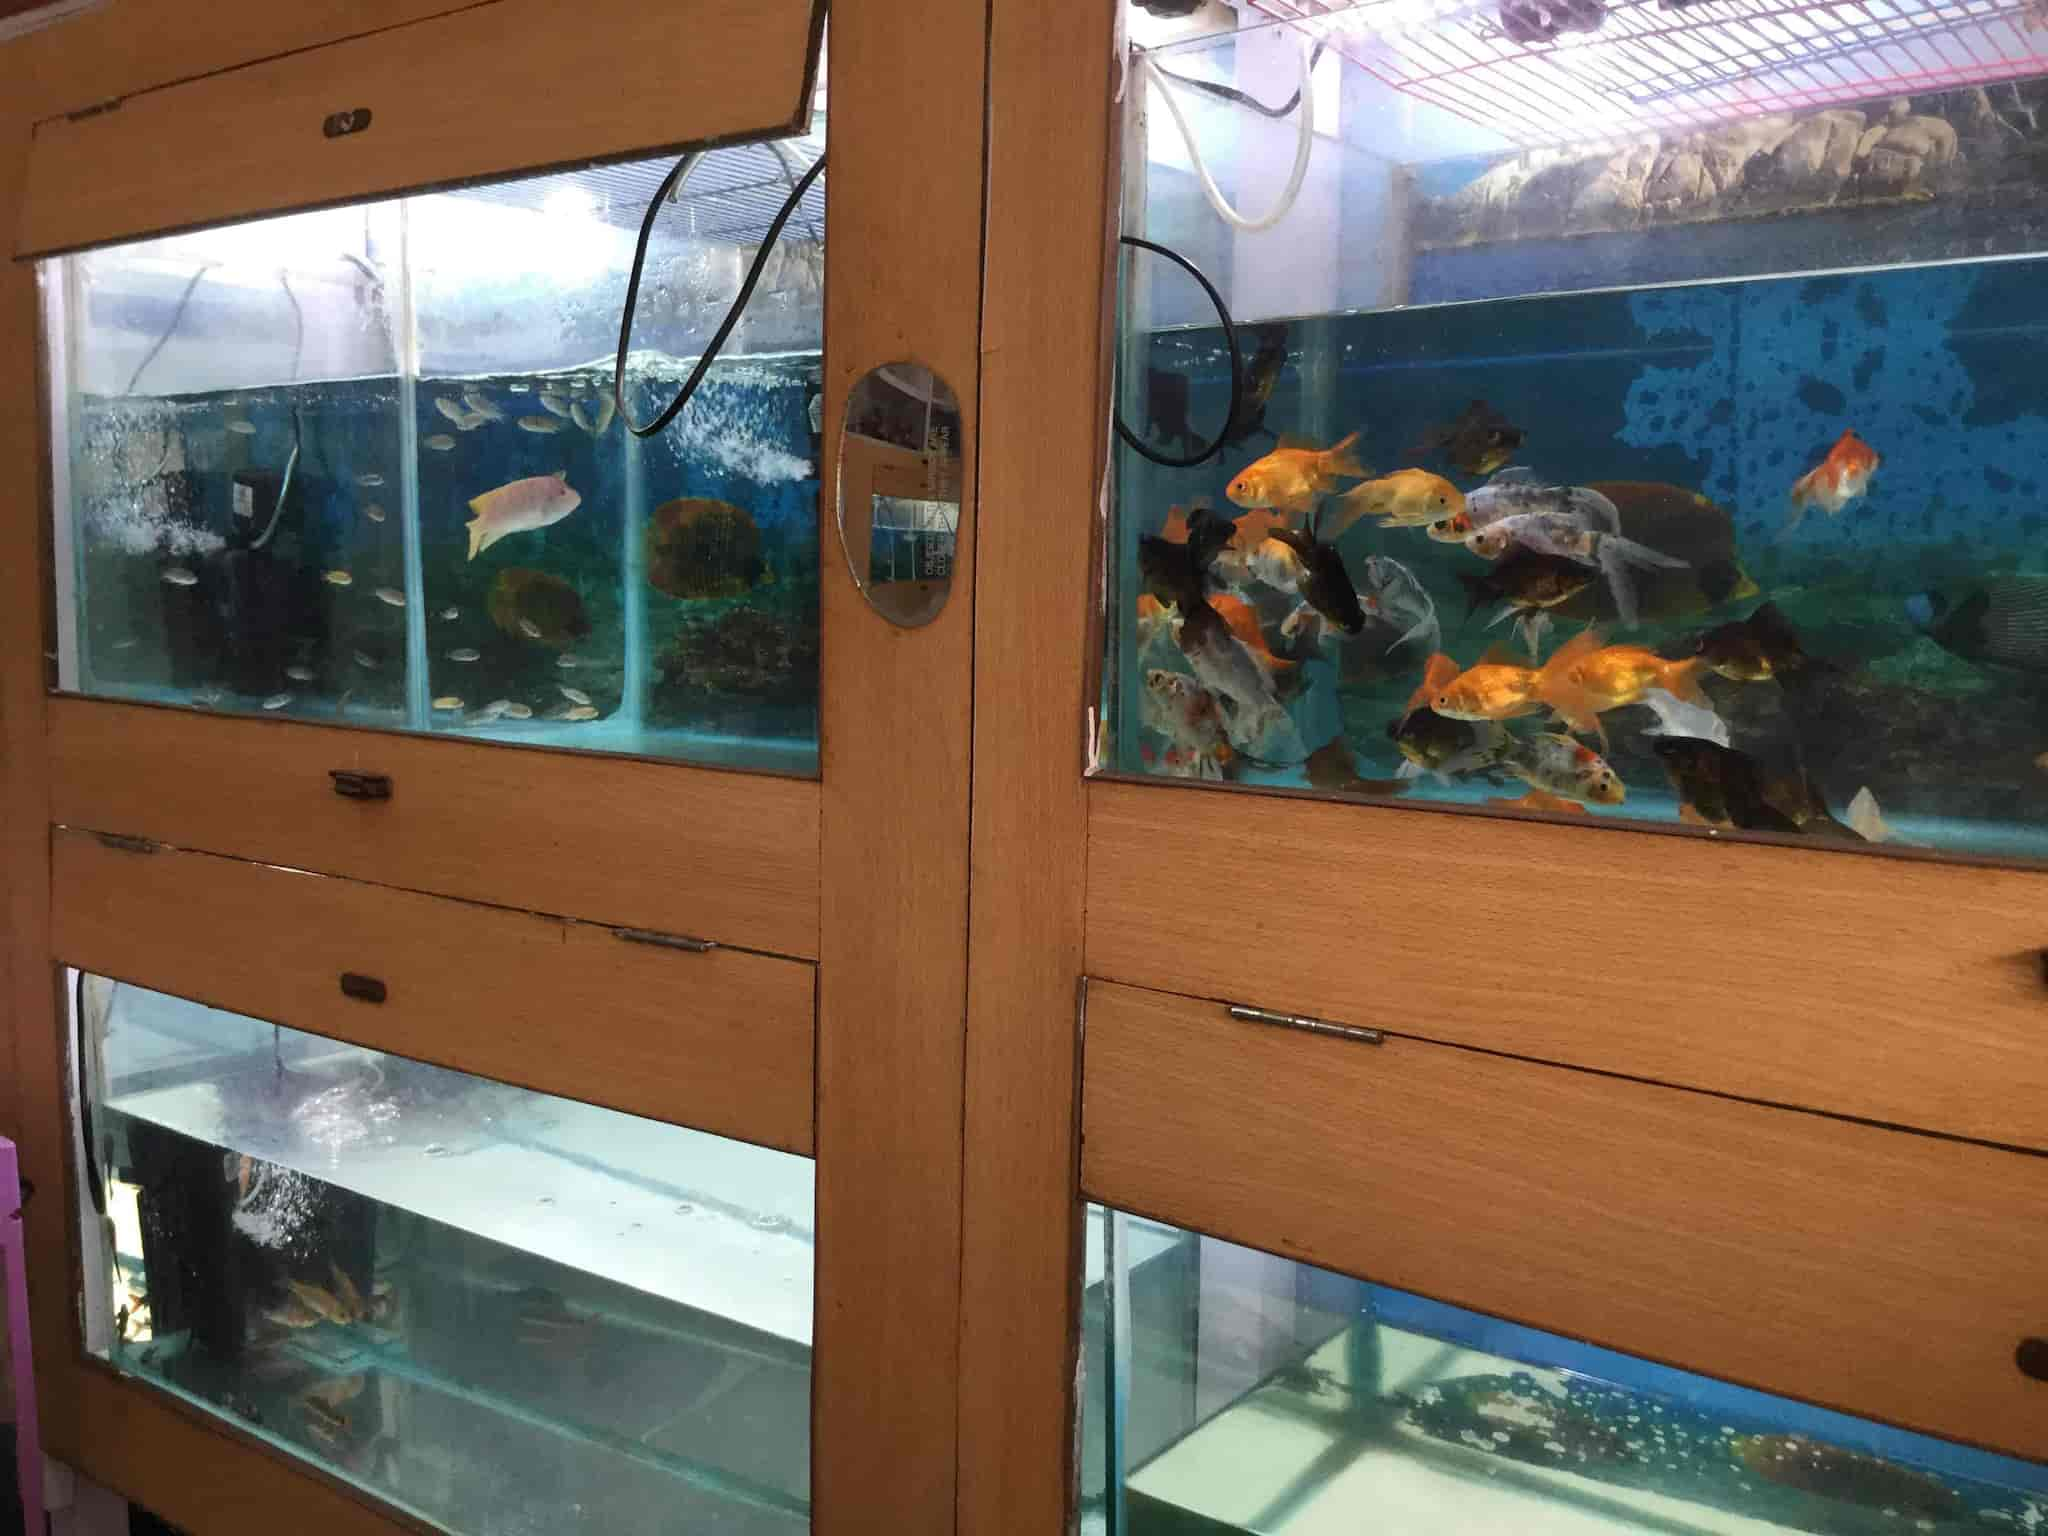 RAJA Aquarium Sahid Nagar Pet Shops in Bhubaneshwar Justdial